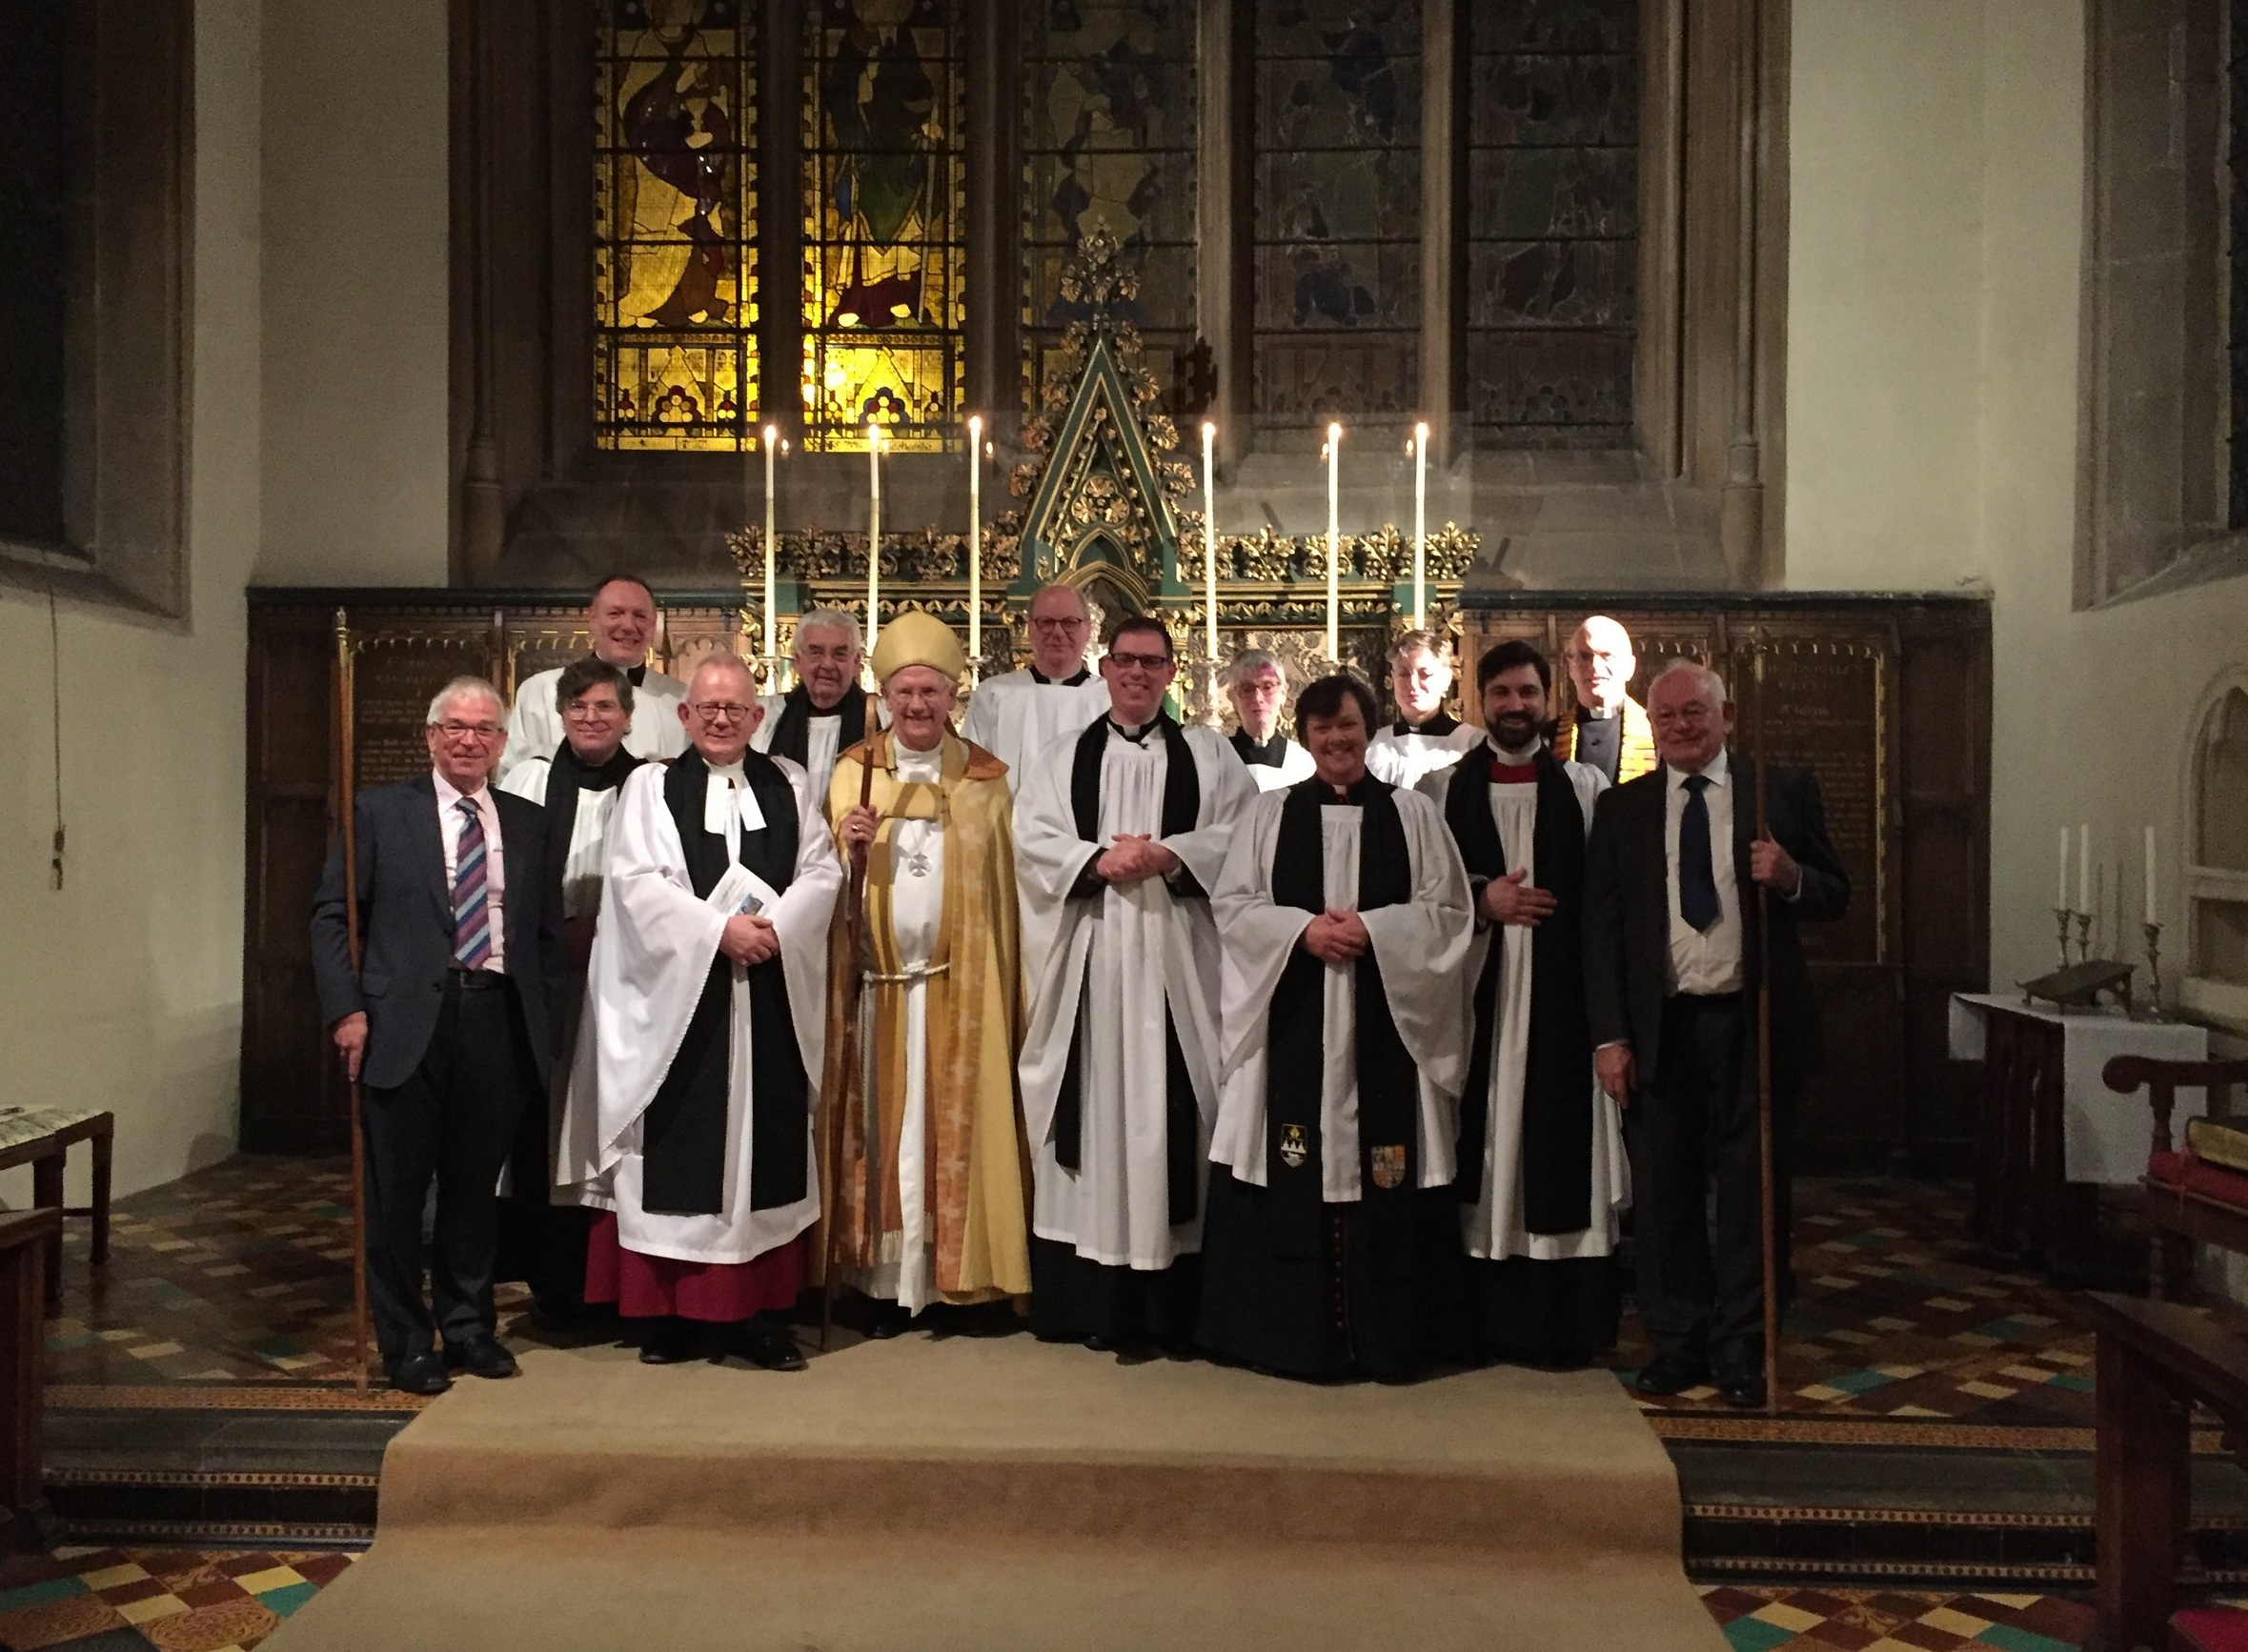 newly instituted Vicar of Wantage, with Bishop of Dorchester and other clergy